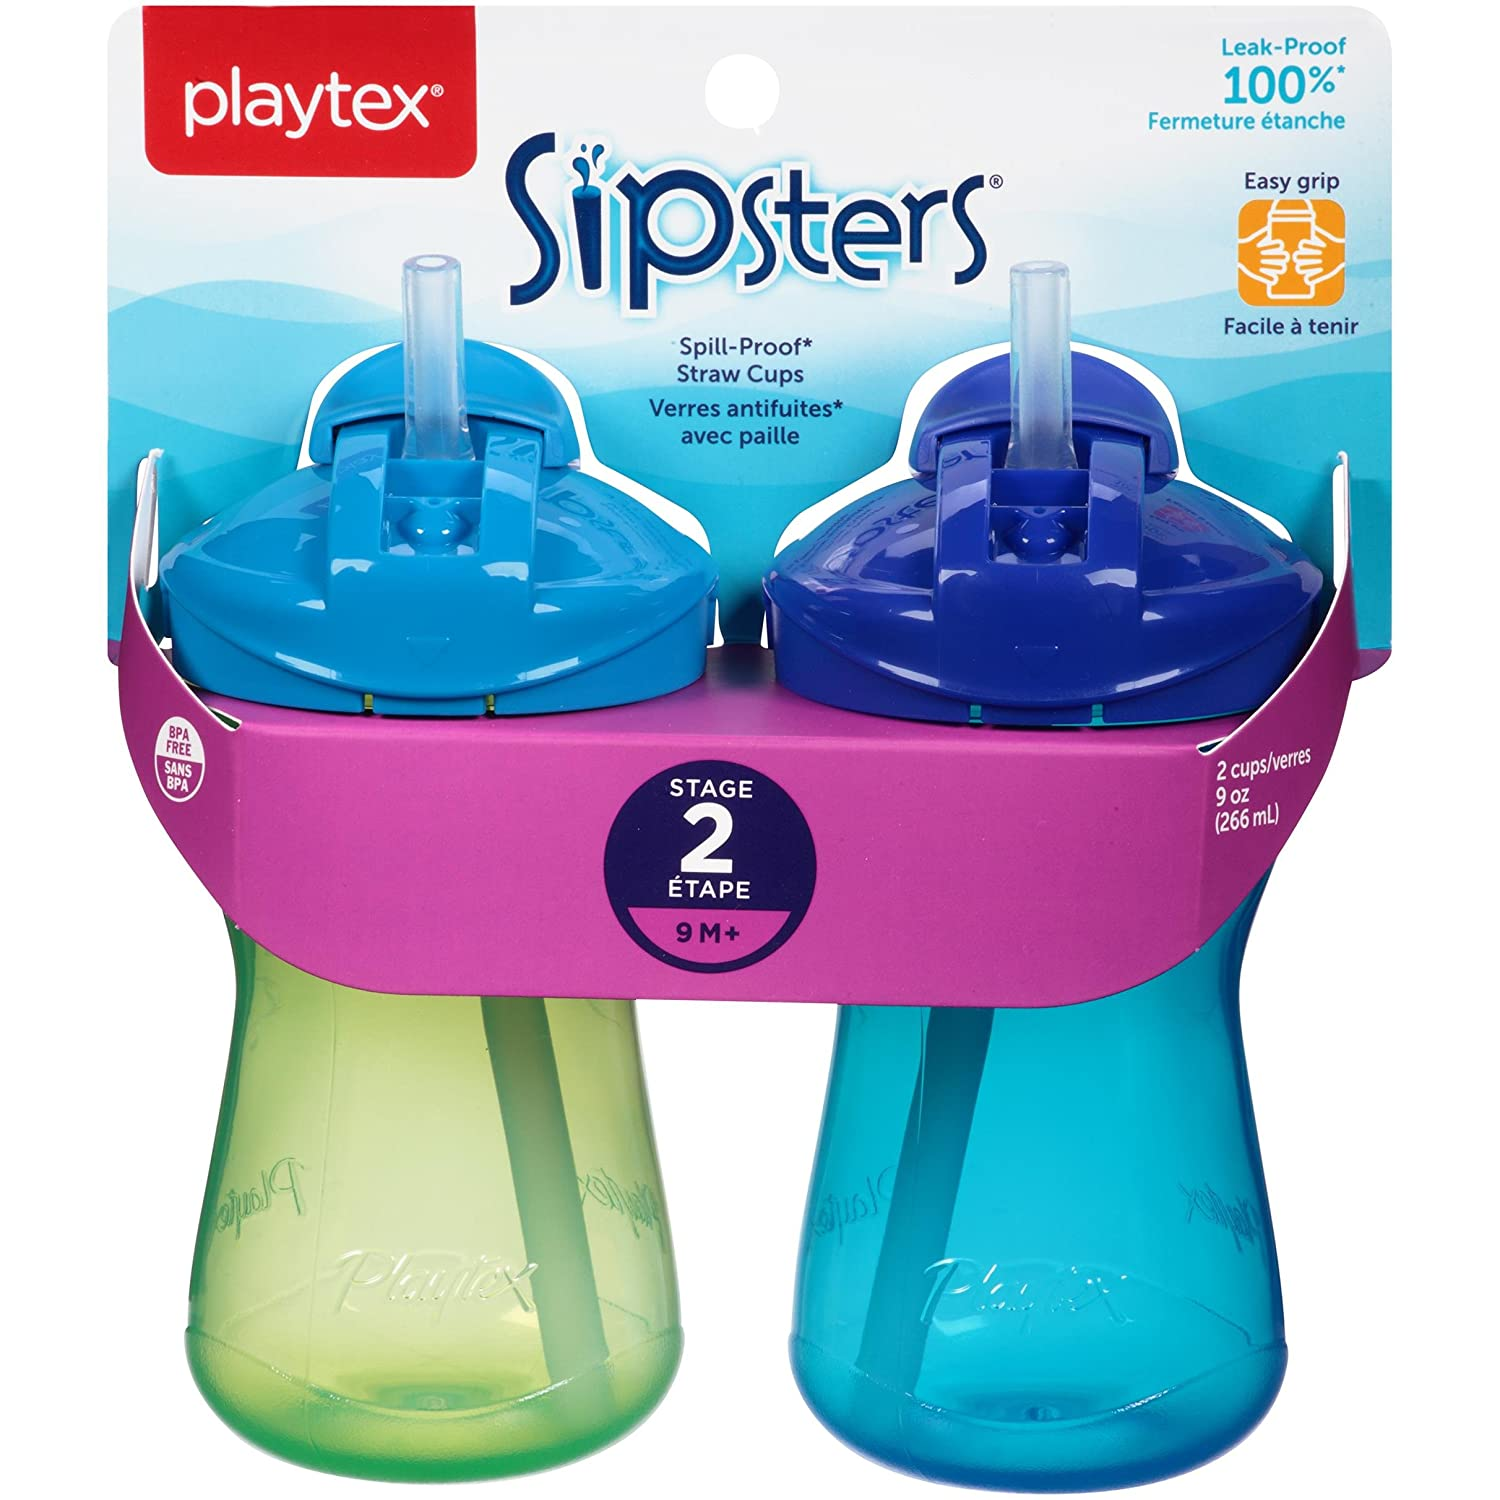 Playtex Sipsters Stage 2 Spill-Proof, Leak-Proof, Break-Proof Straw Sippy Cups - 9 Ounce - 2 Count (Colors May Vary) 5937